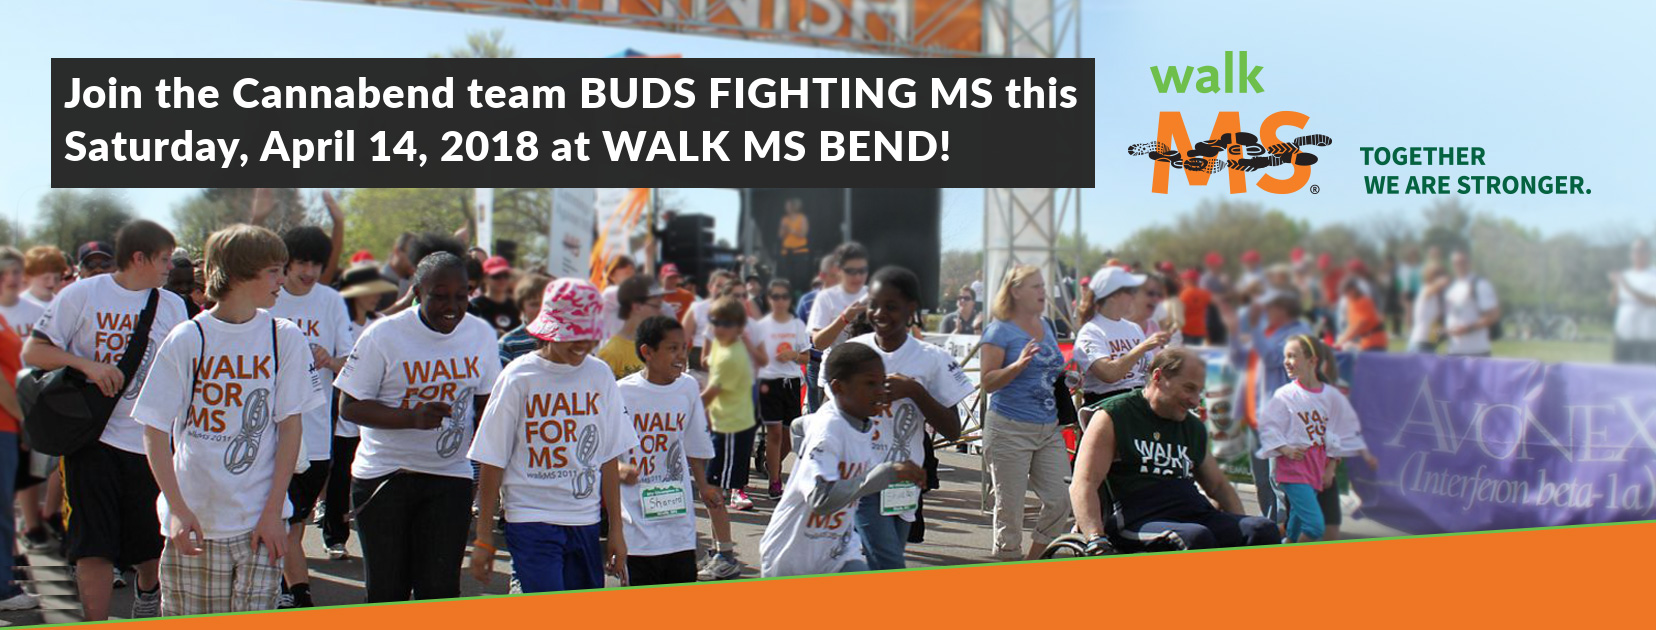 Walk with Cannabend at MS Walk Bend